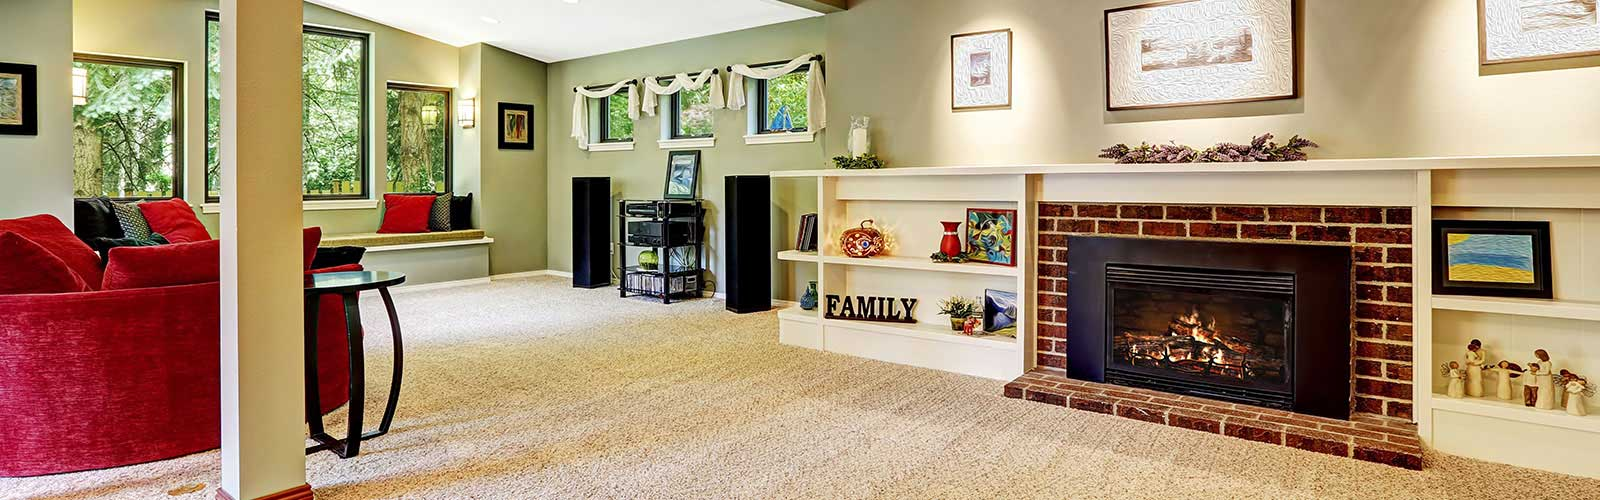 Jeff's Carpet Cleaning and Restoration. We clean carpets, area rugs, upholstered furniture. We use only family and pet friendly products. 903.885.1320